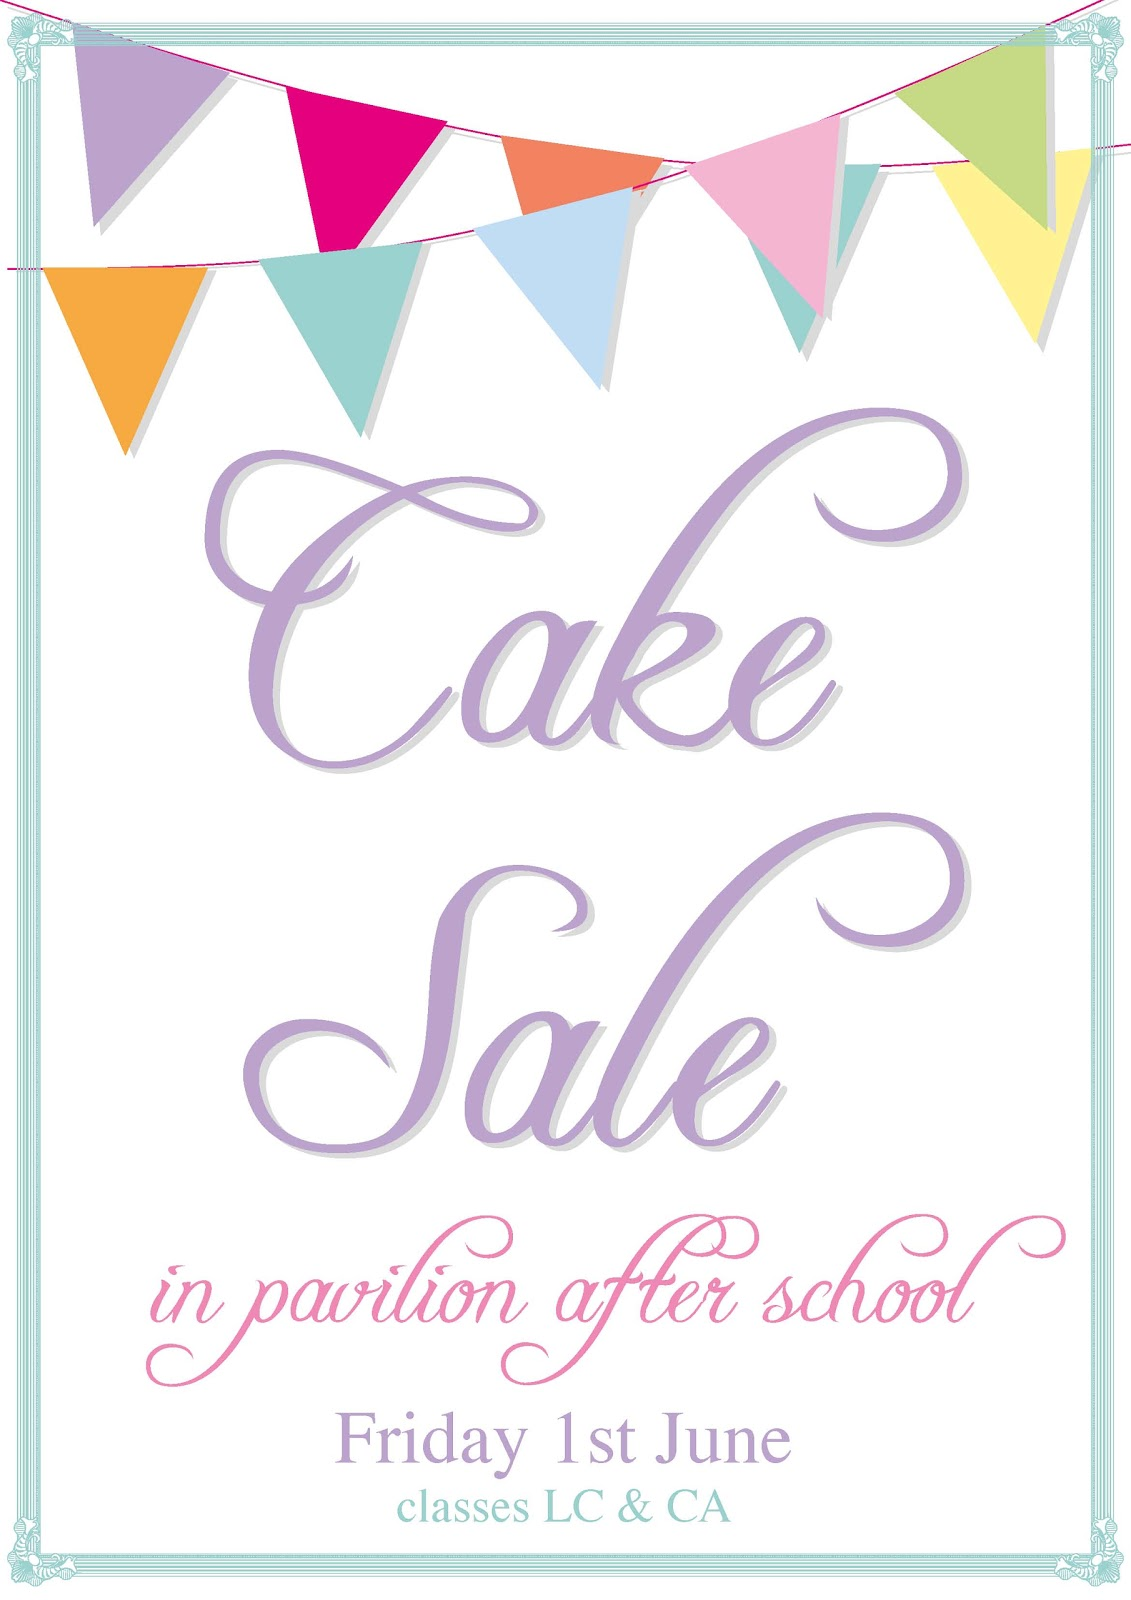 Bake Sale Poster Templates Posted by office at tuesday,